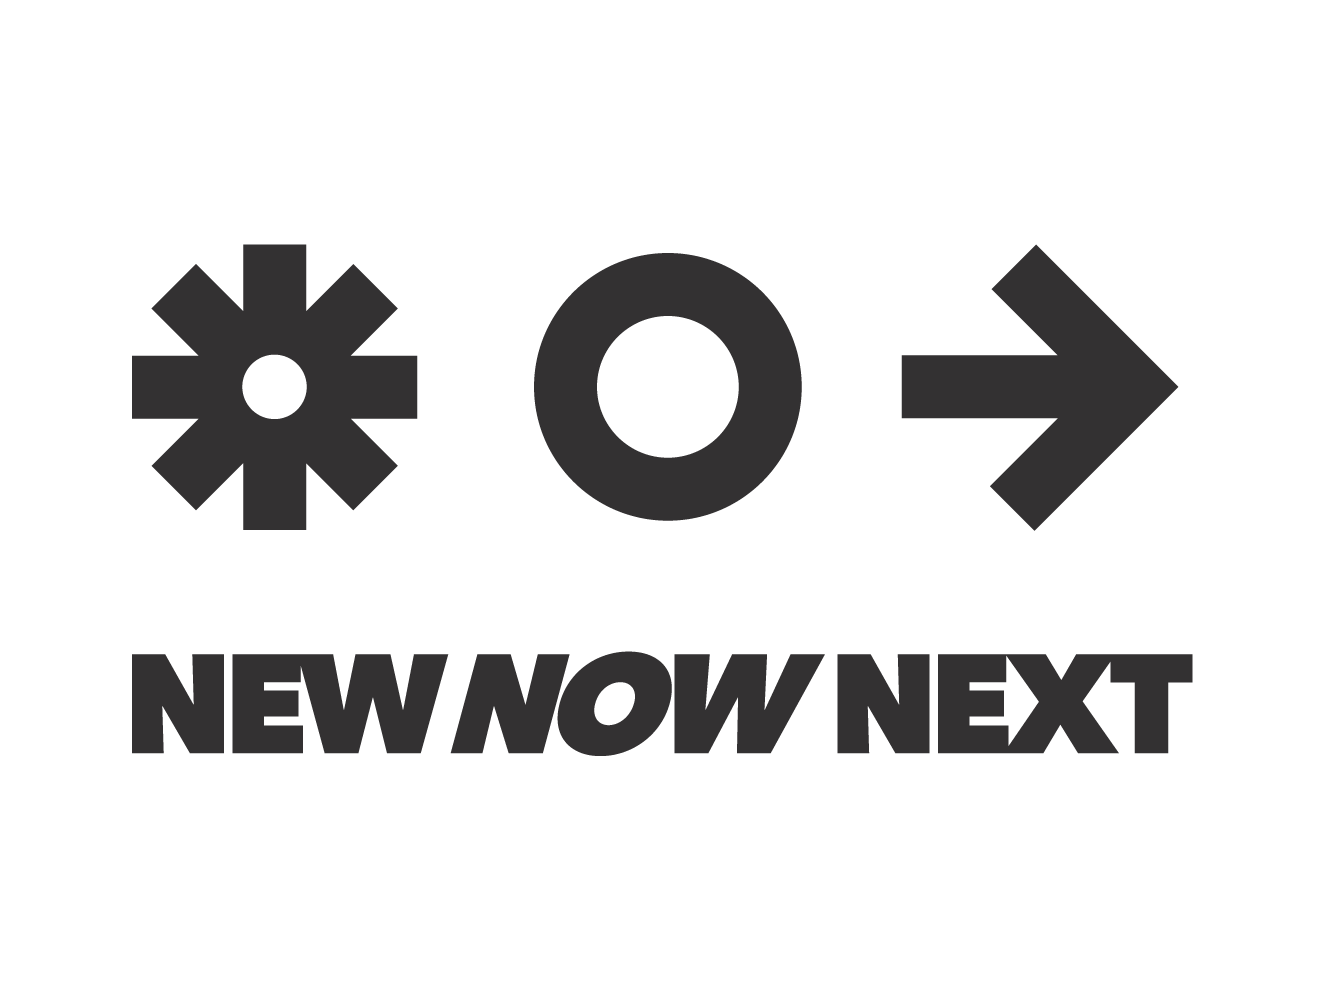 Cover image: NewNowNext (2013)